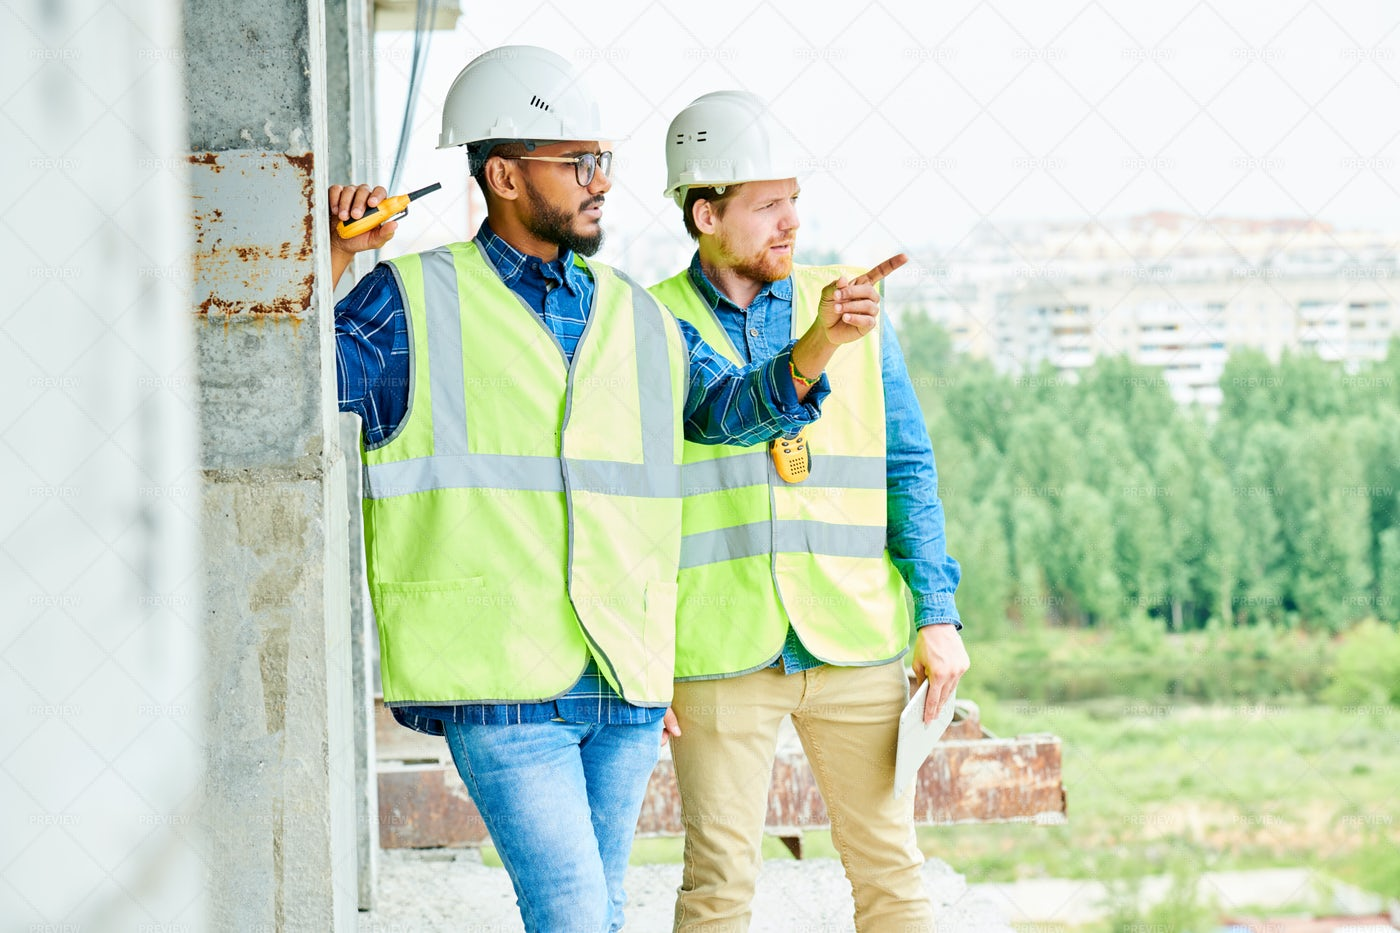 Workers Discussing Location Of...: Stock Photos